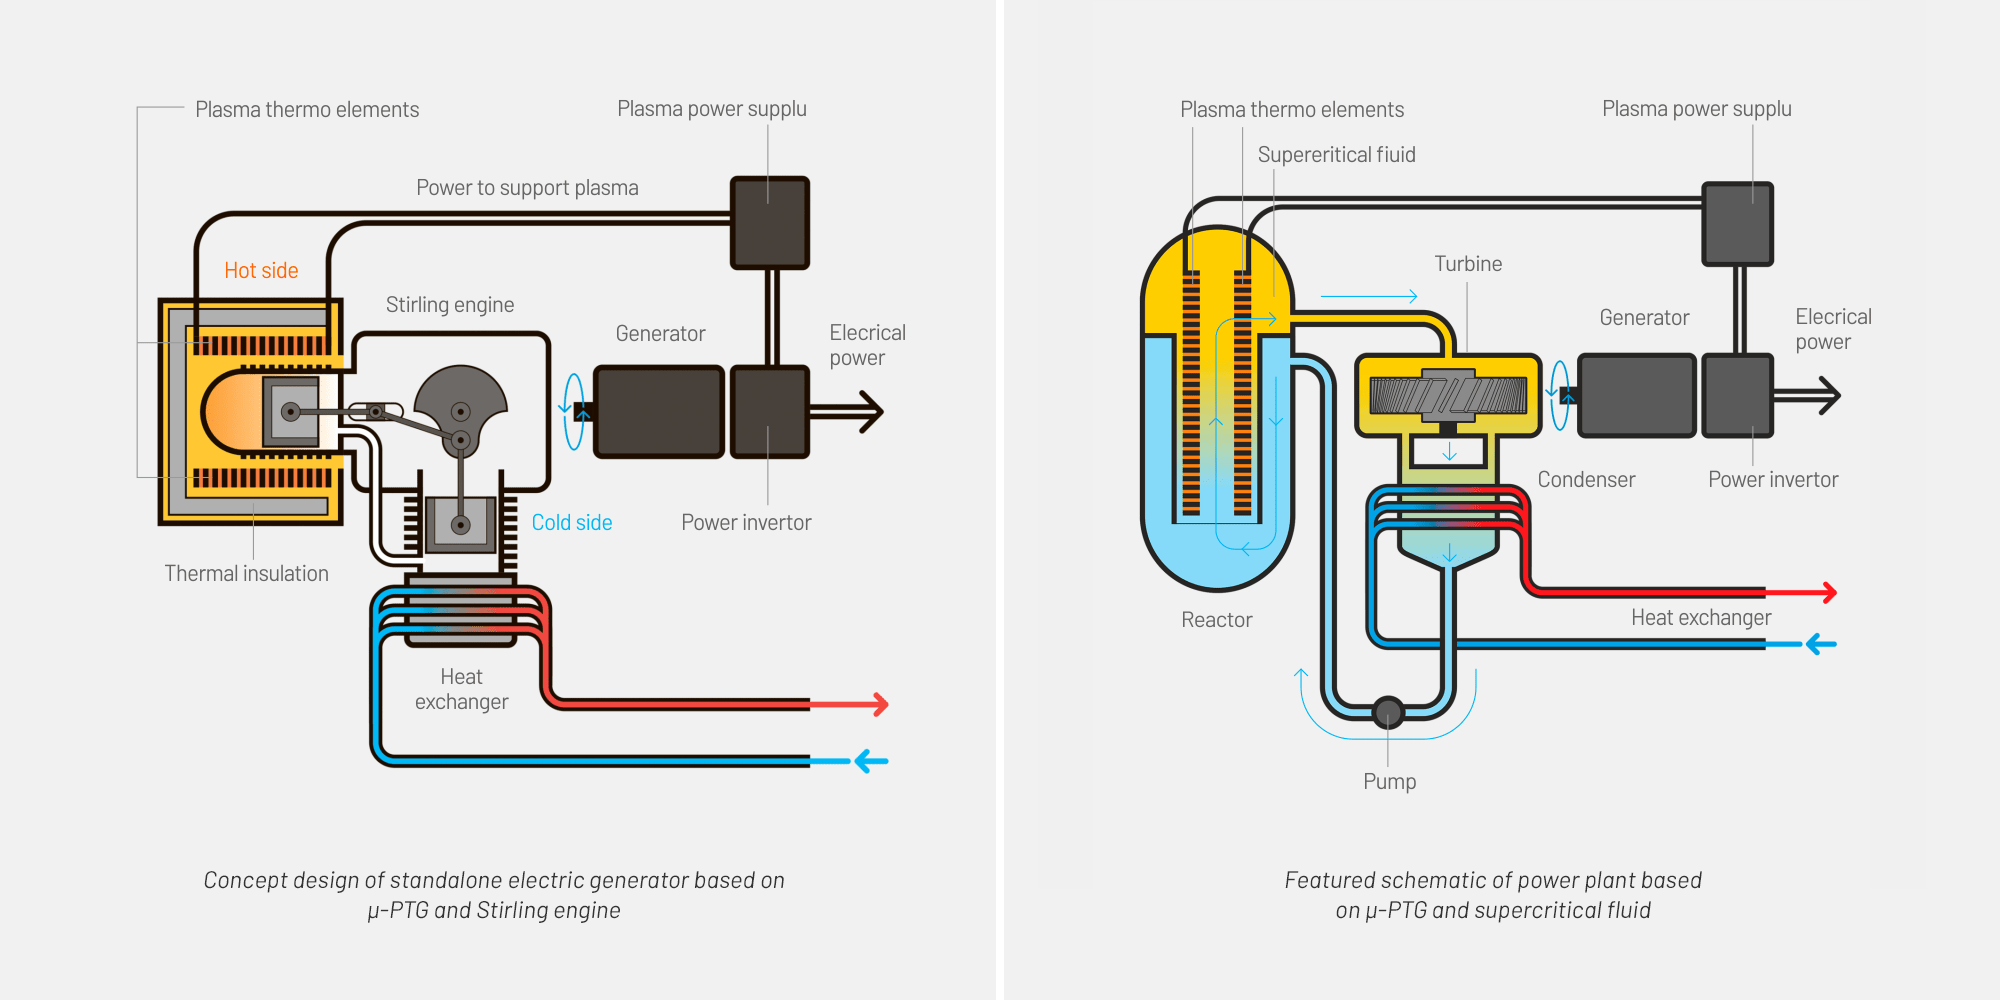 hight resolution of featured schematic of power plant based on micro ptg and supercritical fluid